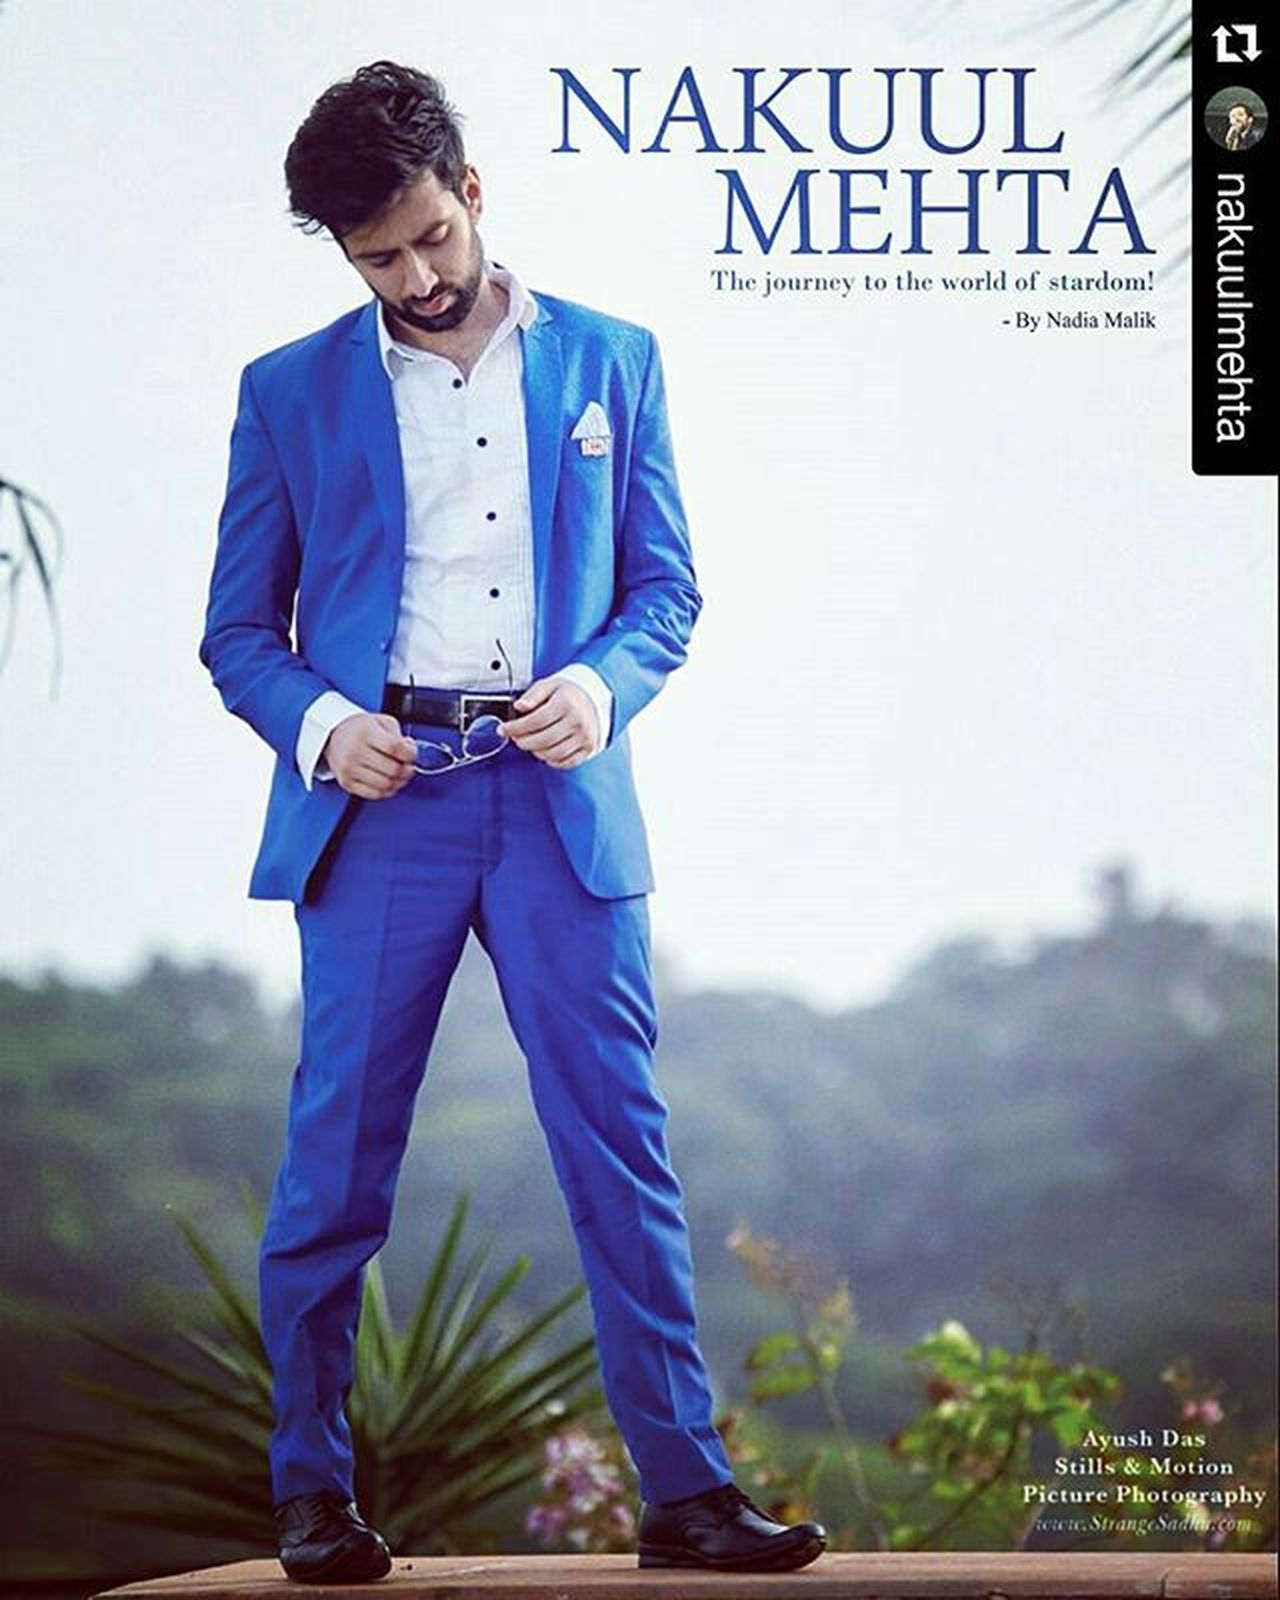 Repost @nakuulmehta with @repostapp ・・・ Alright kids, Happy Children's Day! ThnkMkt Magazine Nov Issue on stand now! Yay @nadiiaamalik @ayushdas Nakuulmehta Magazine Portfolio Indian Actors Indianactors Incredibleindia Bluesuit Blue Tvactors Teleactorsindia Indiantv Indianmodels Nakuul Adsmpp Indianmen Indian_men Filmactors Indiafilmactors Indian